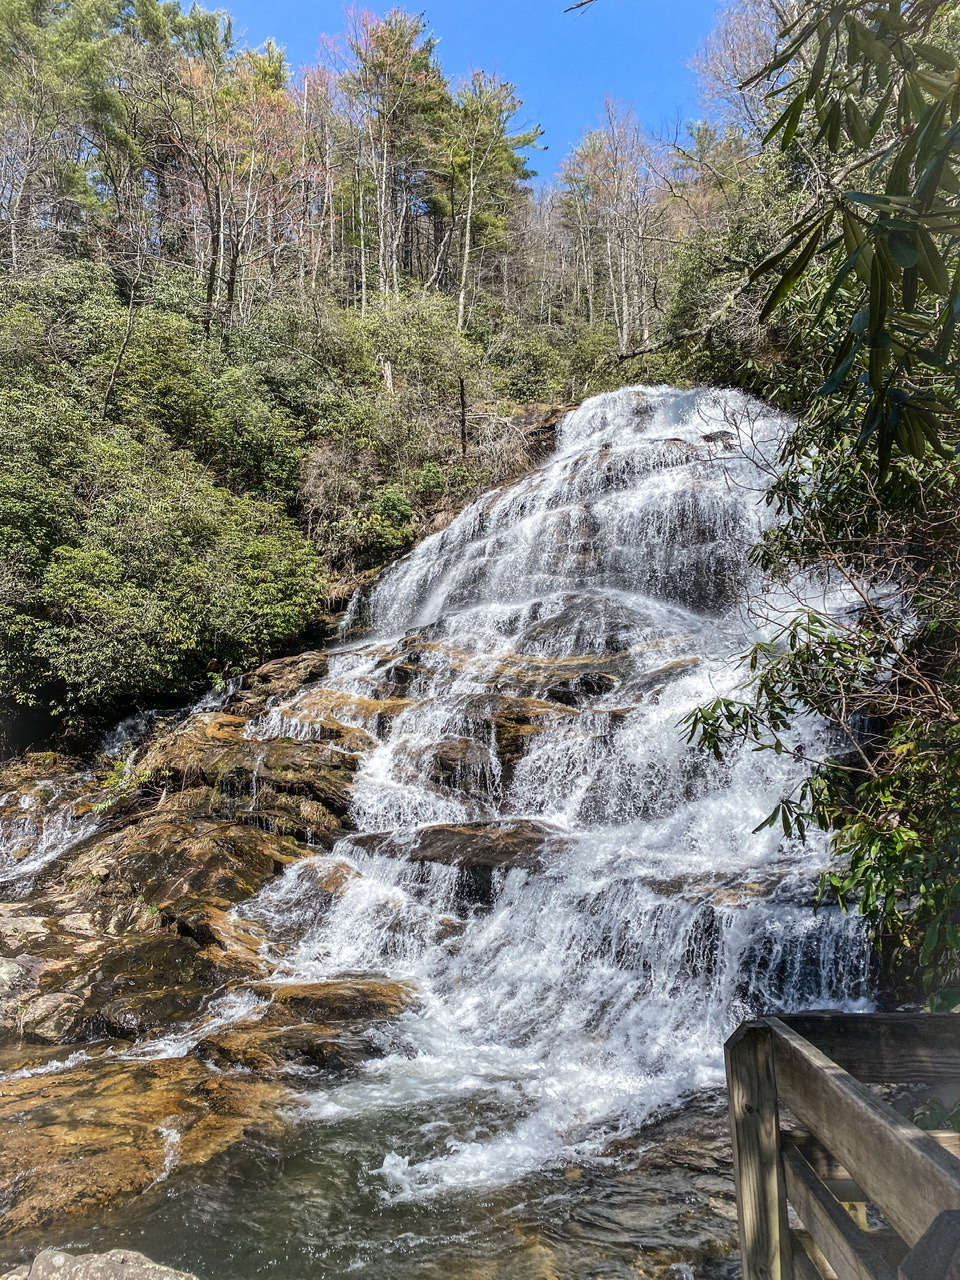 Glen Falls easy to moderate hike on the outskirts of Highlands, North Carolina!